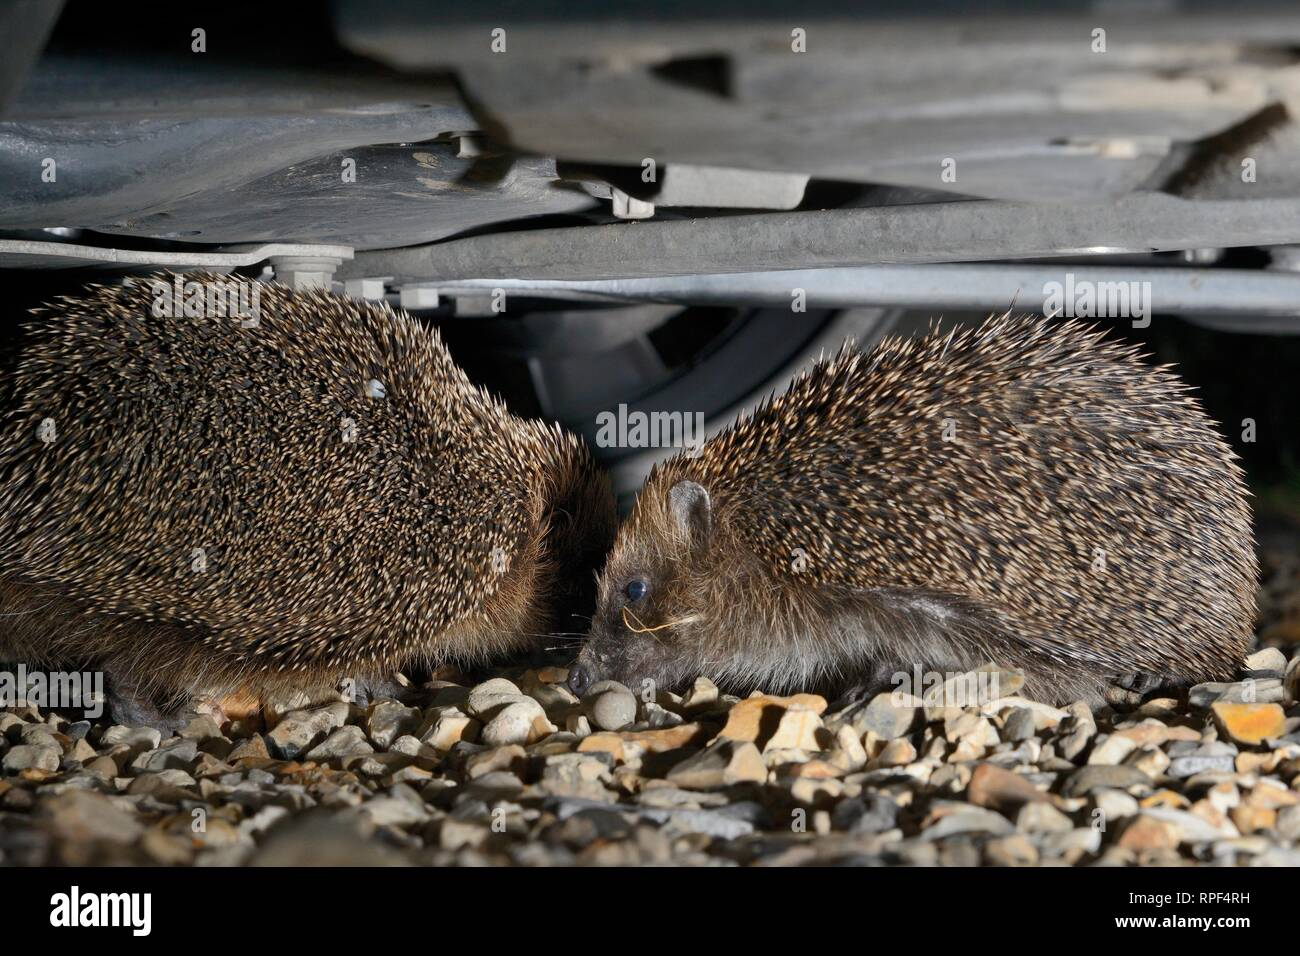 Hedgehog (Erinaceus europaeus) pair courting under a car on a gravel drive, with the male circling and nudging the female, Chippenham, Wiltshire, UK - Stock Image